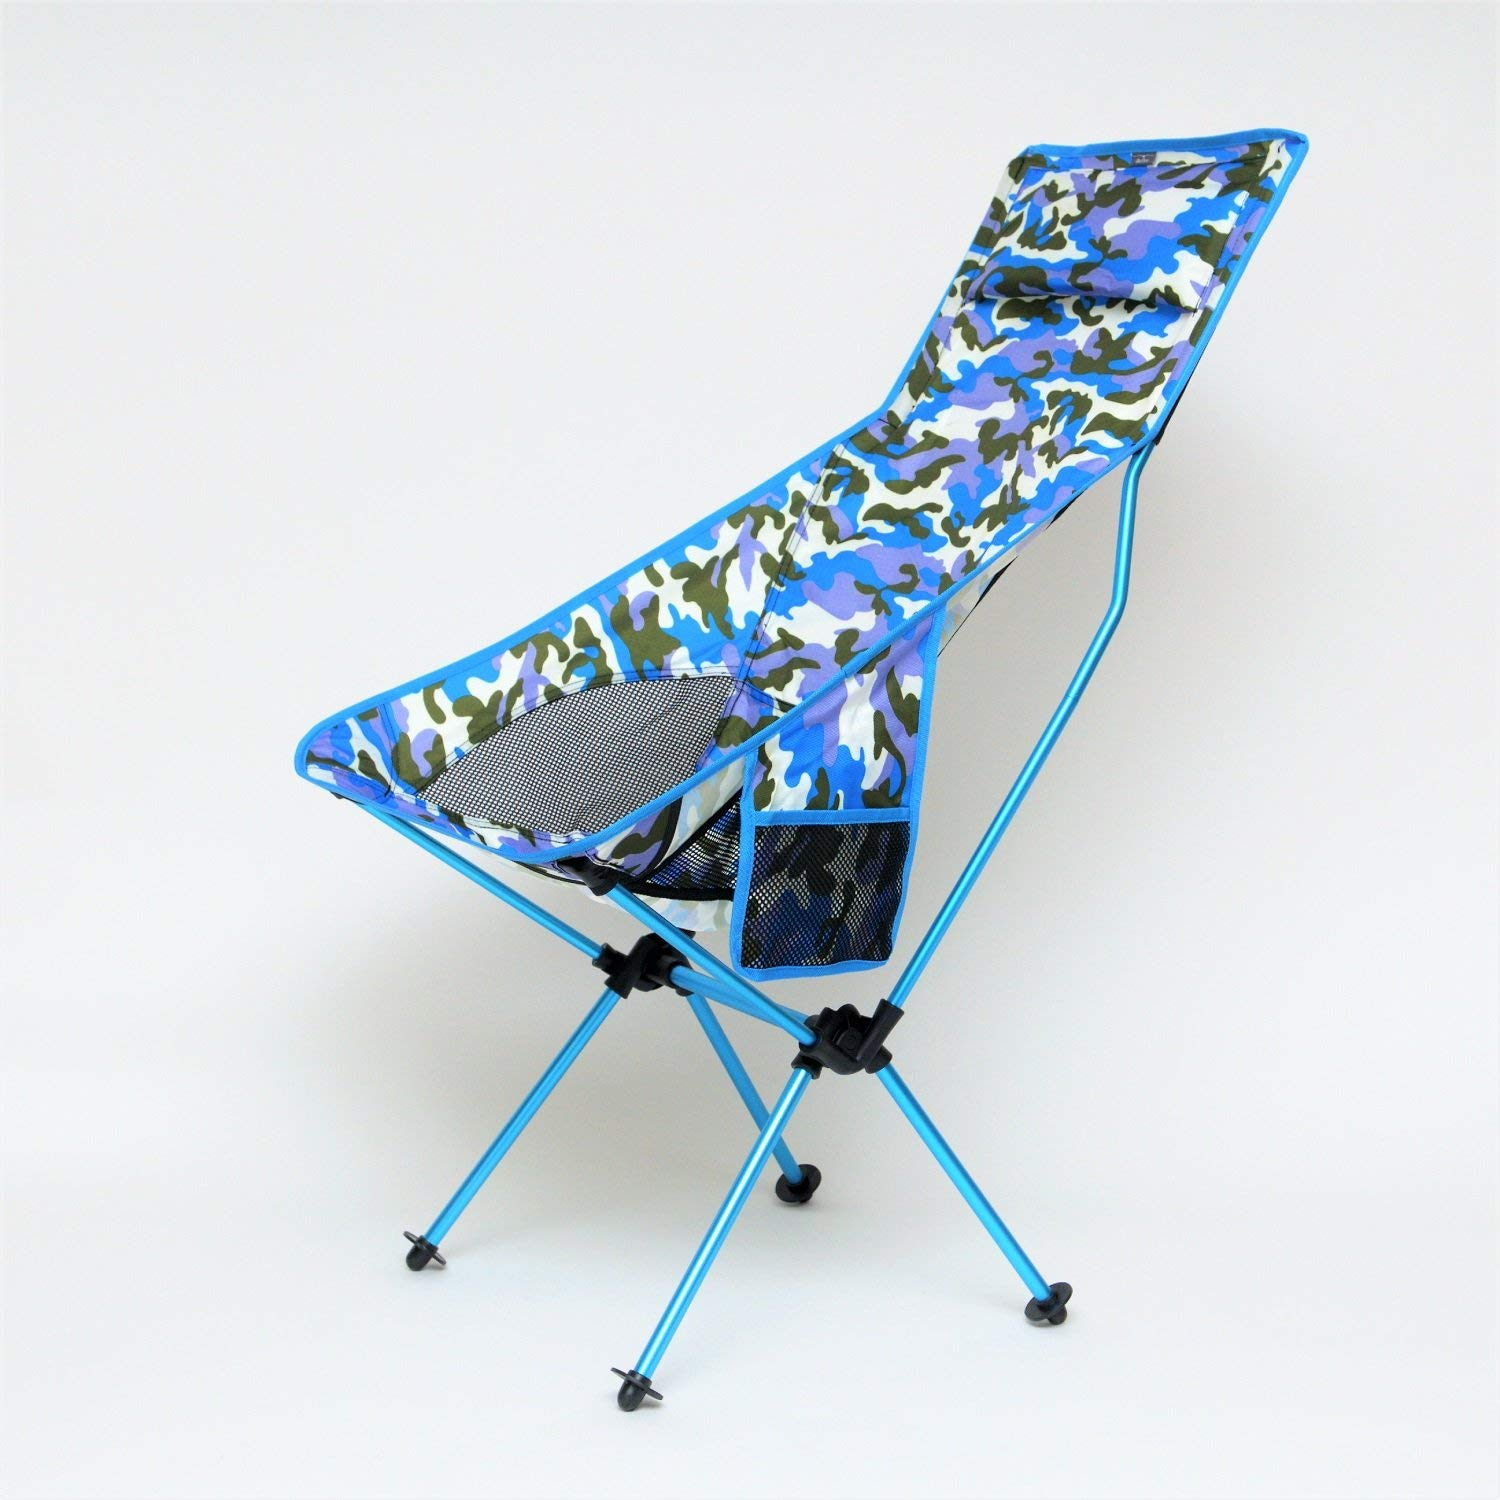 Sunbathing Chairs Cheap Sunbathing Chairs Find Sunbathing Chairs Deals On Line At